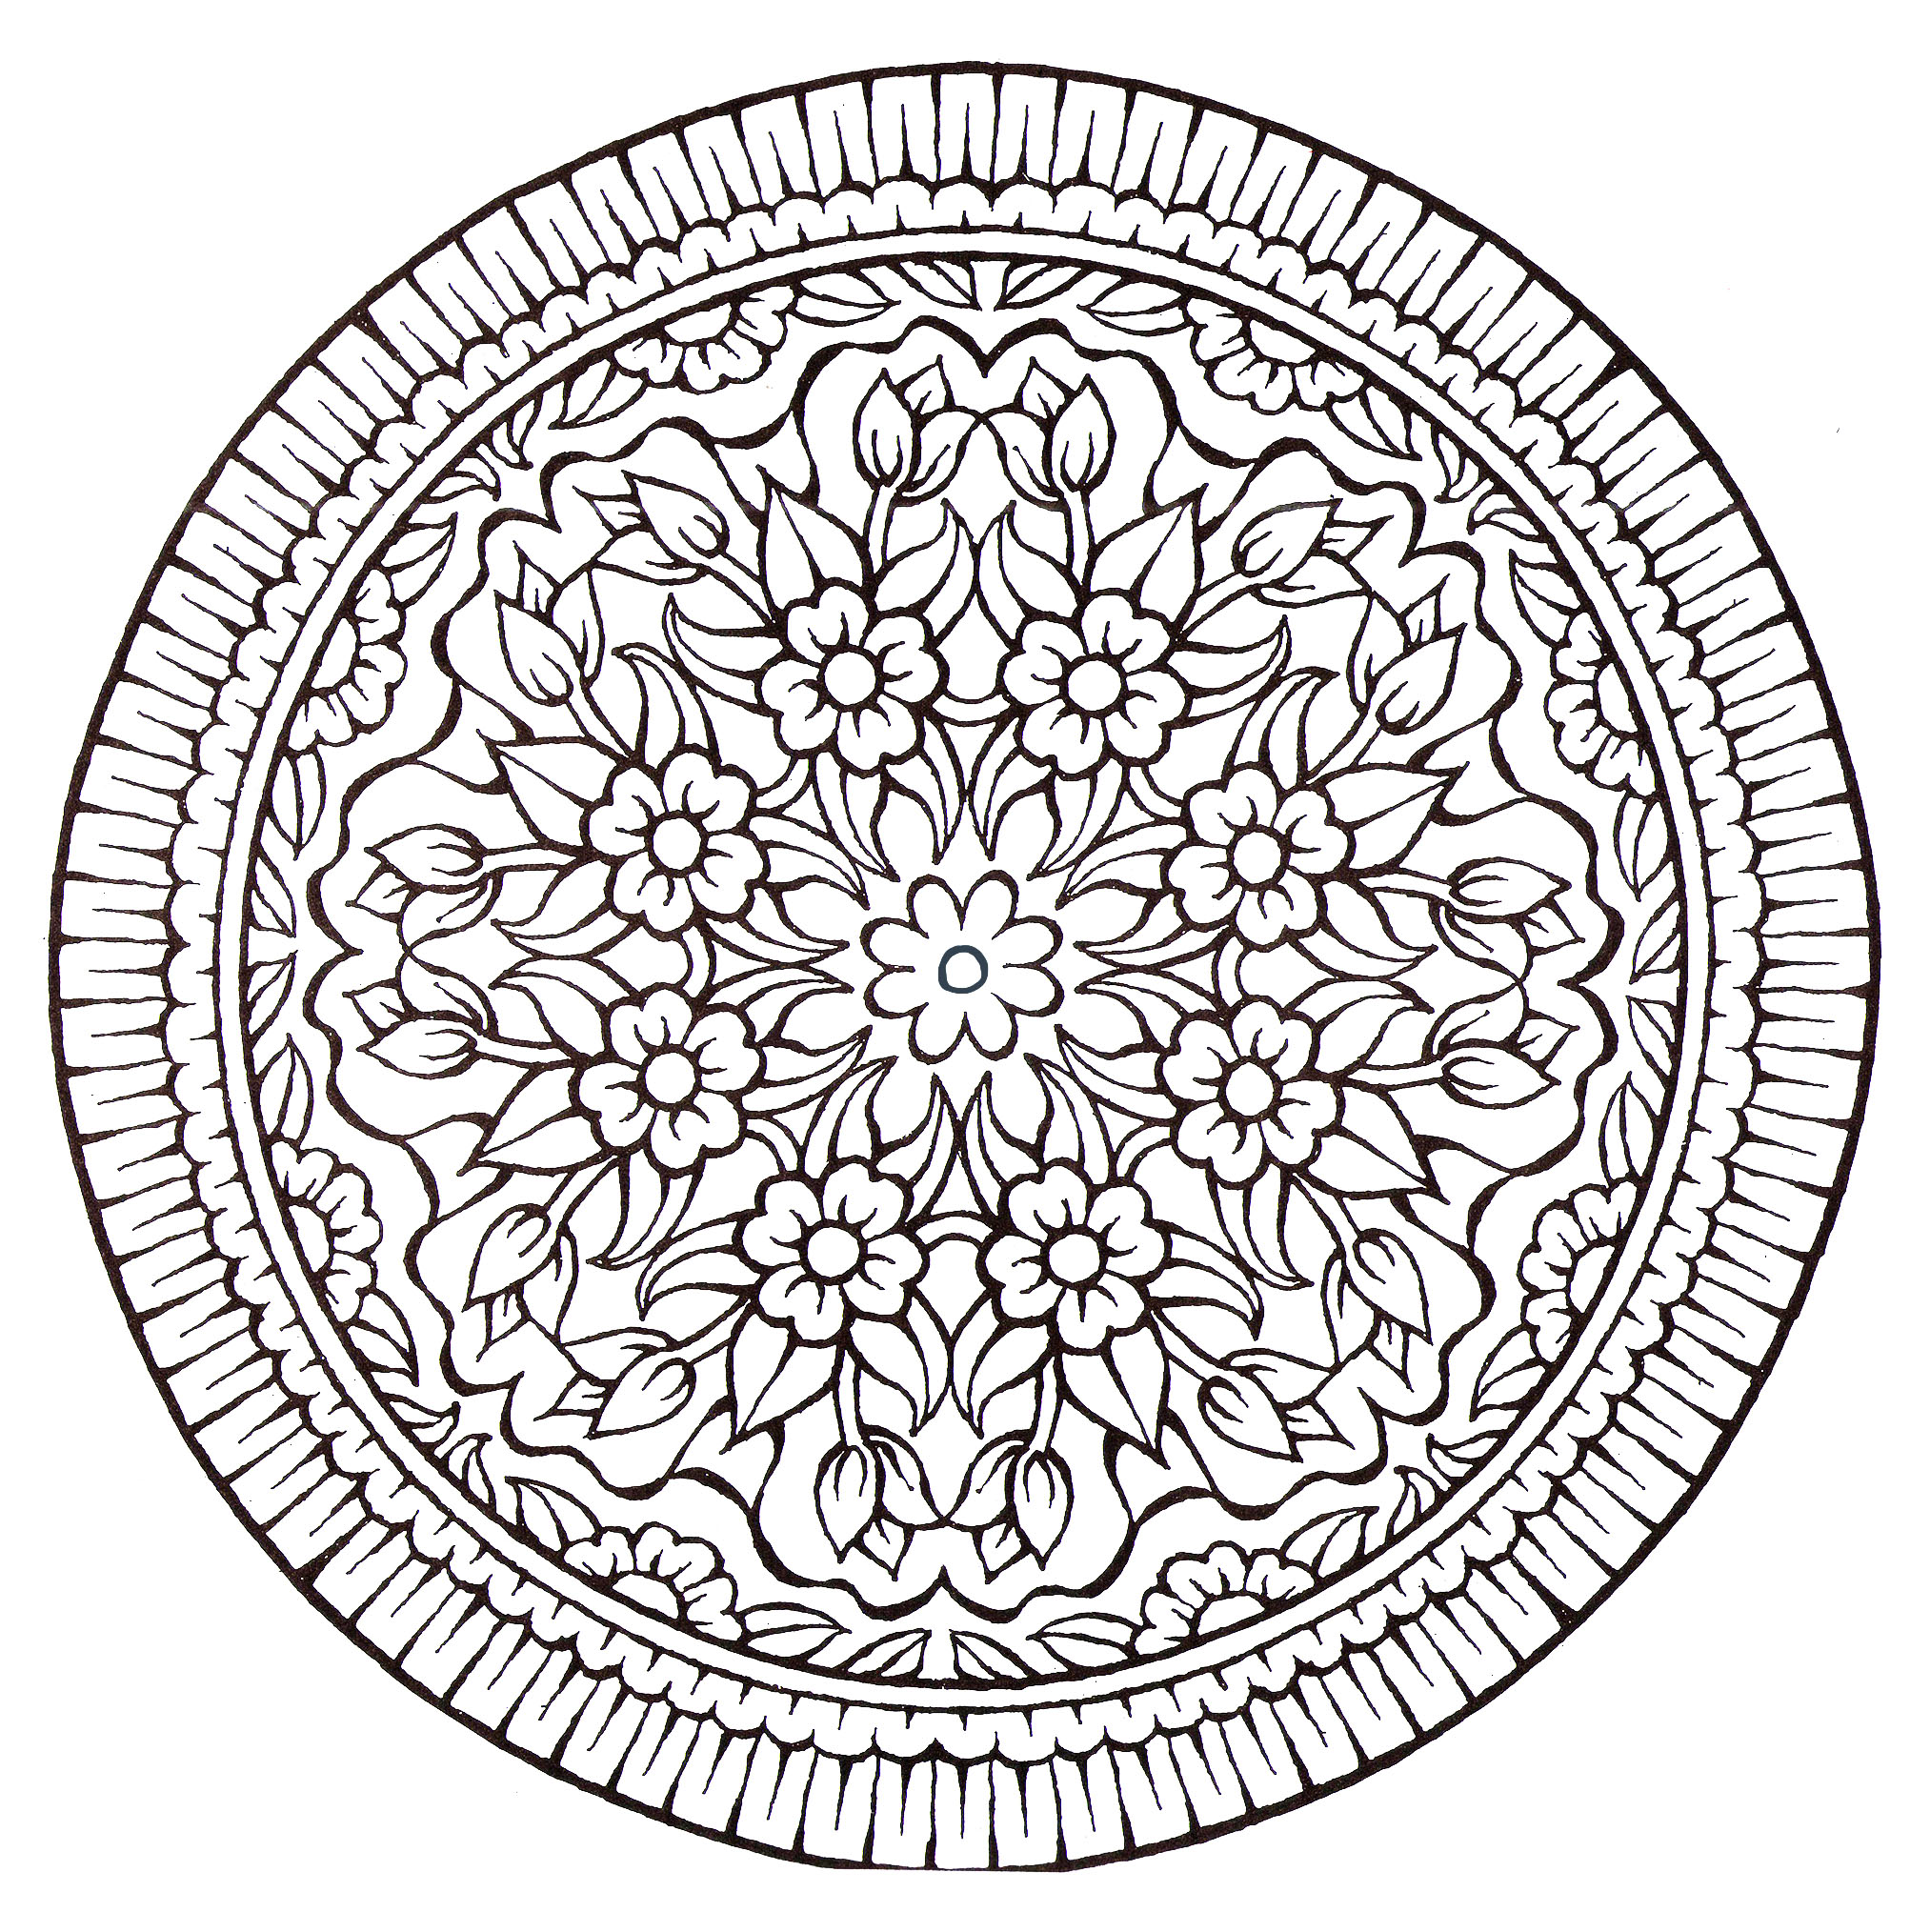 A Mandala very 'Vintage style', with a lot of flowers